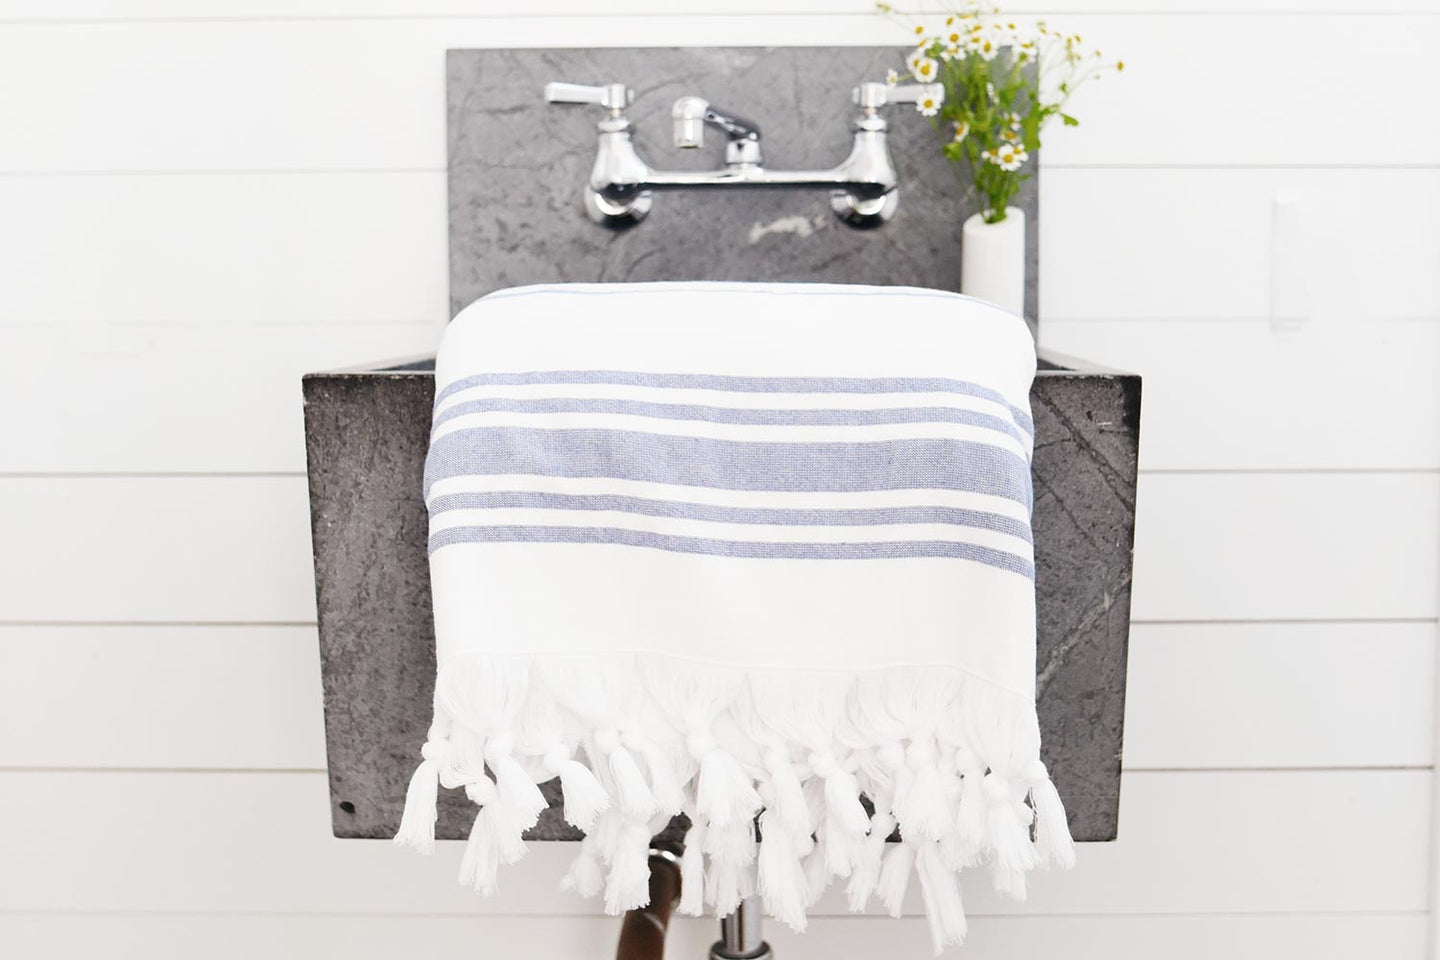 White and denim blue luxury Turkish towel draped in bathroom over modern sink.